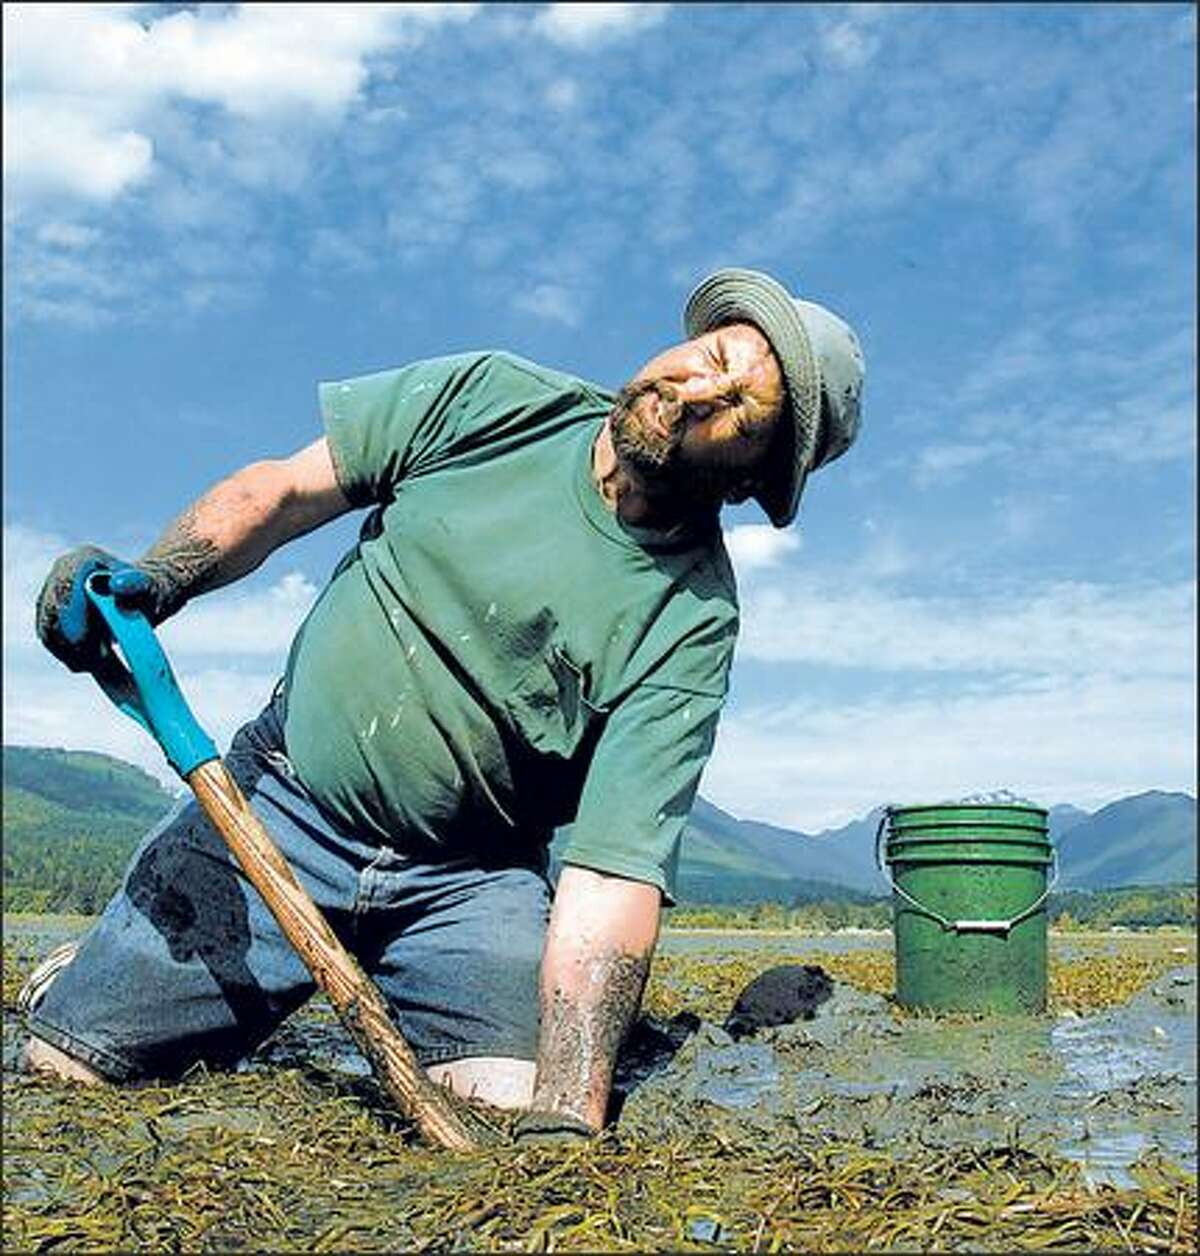 Jerry Strawn puts his all into digging for a geoduck in the Dosewallips State Park tideflats. Unfortunately, all that effort netted a relatively small clam.